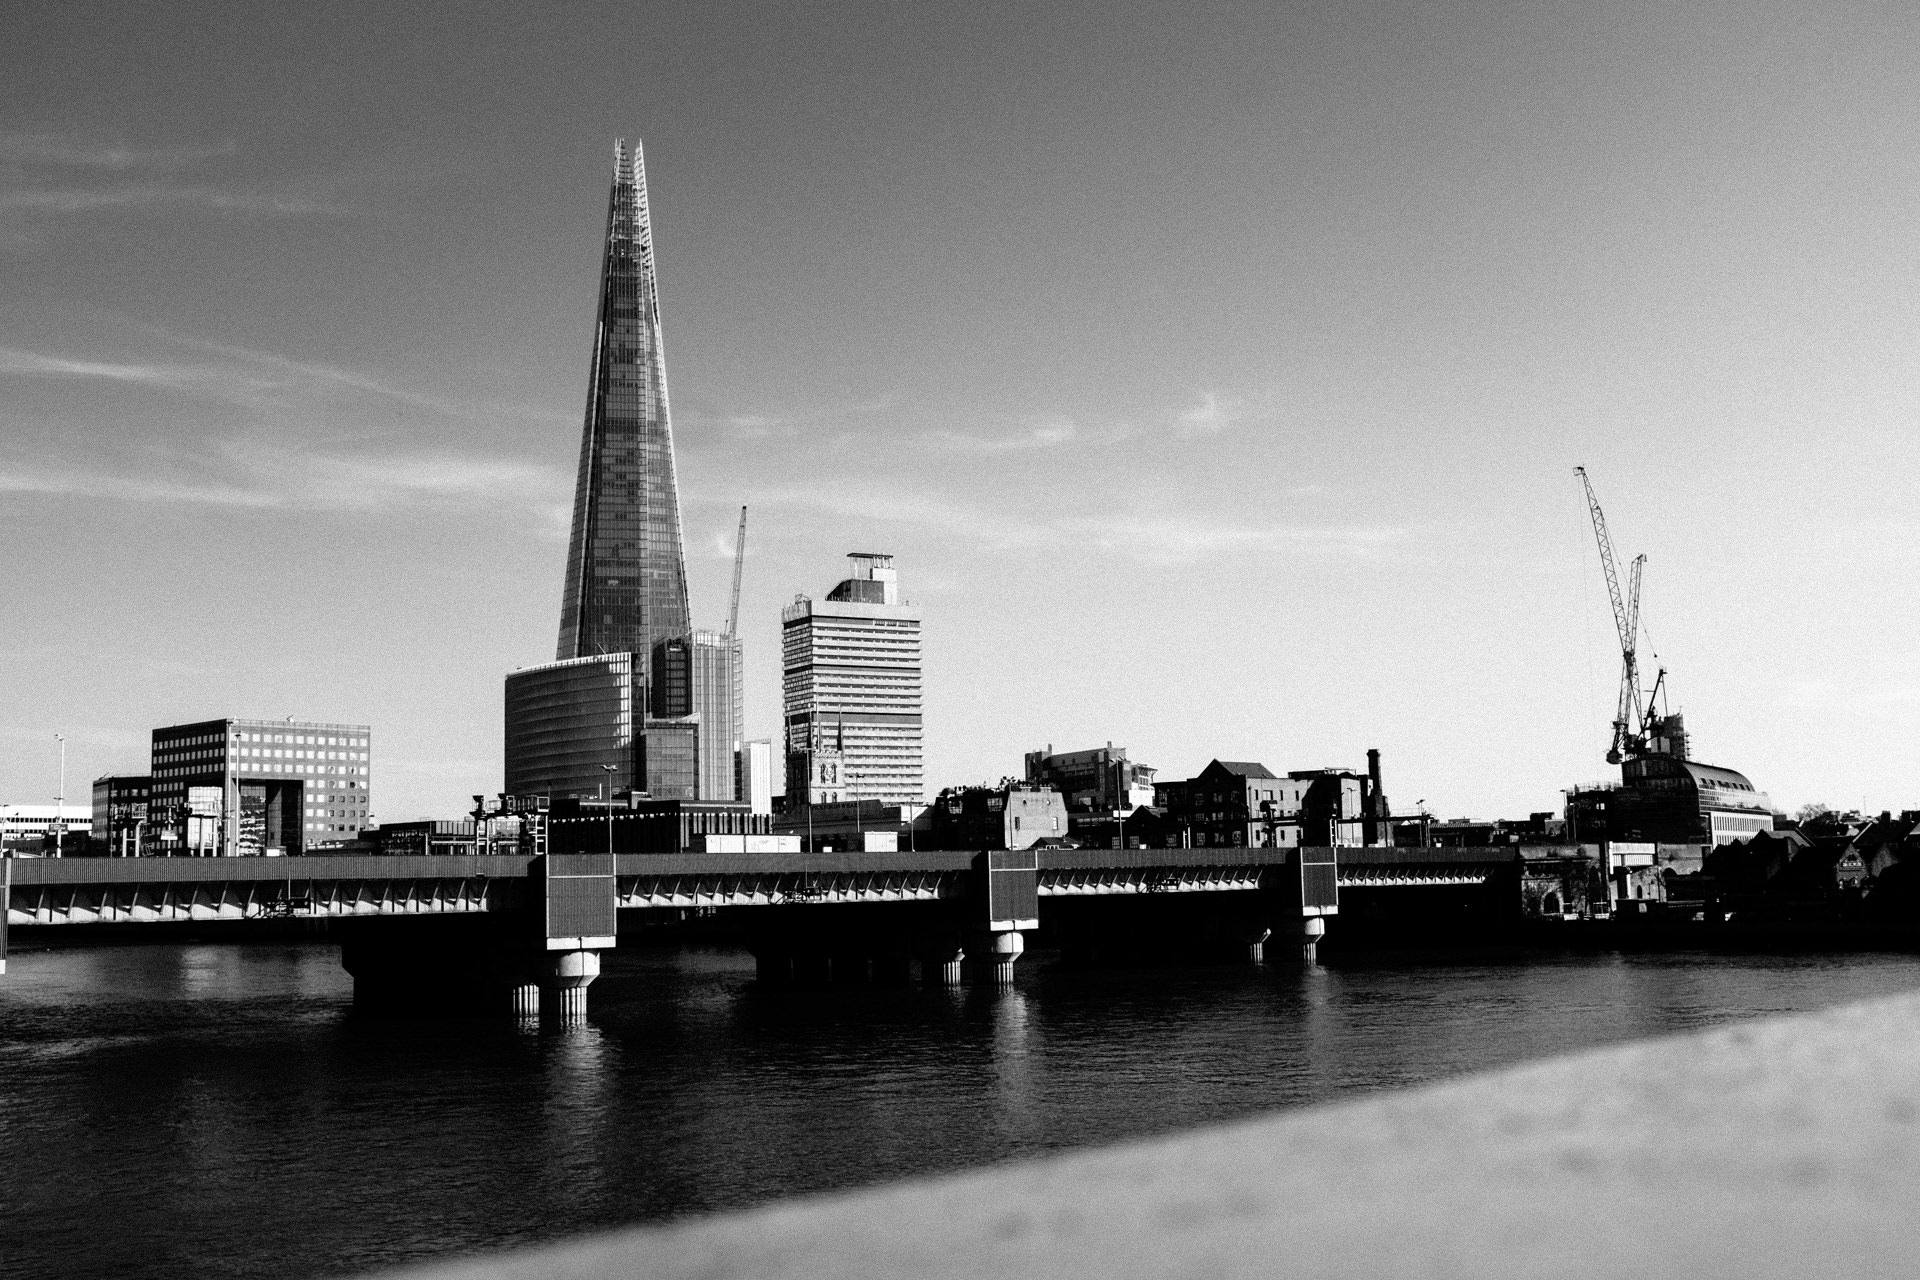 black and white image of the shard london